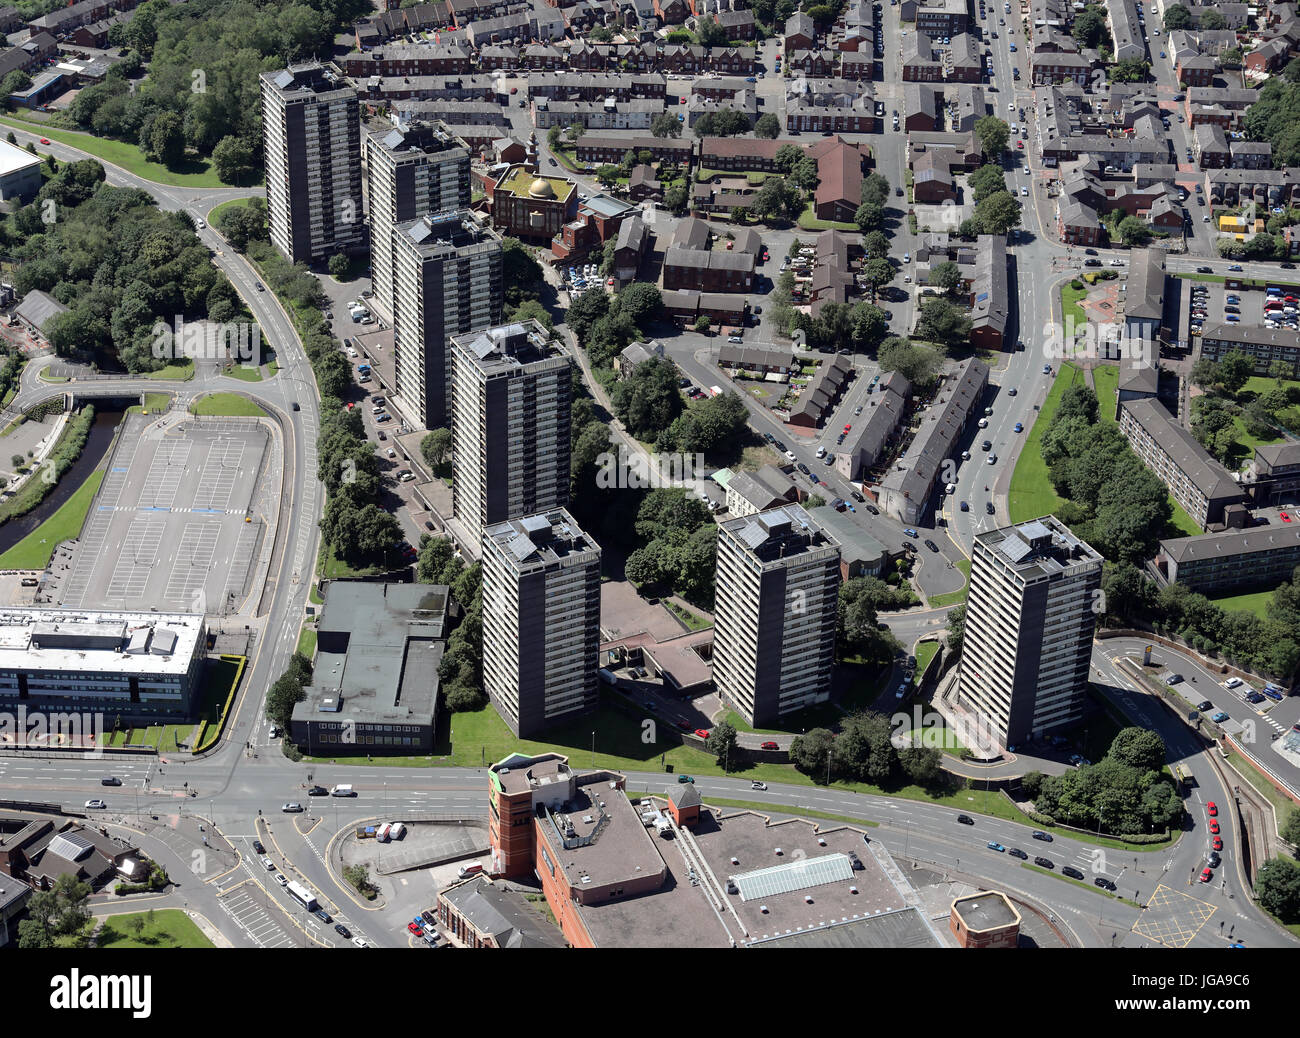 aerial view of the Seven Sisters Tower Blocks in Rochdale Town Centre, Lancashire, UK - Stock Image